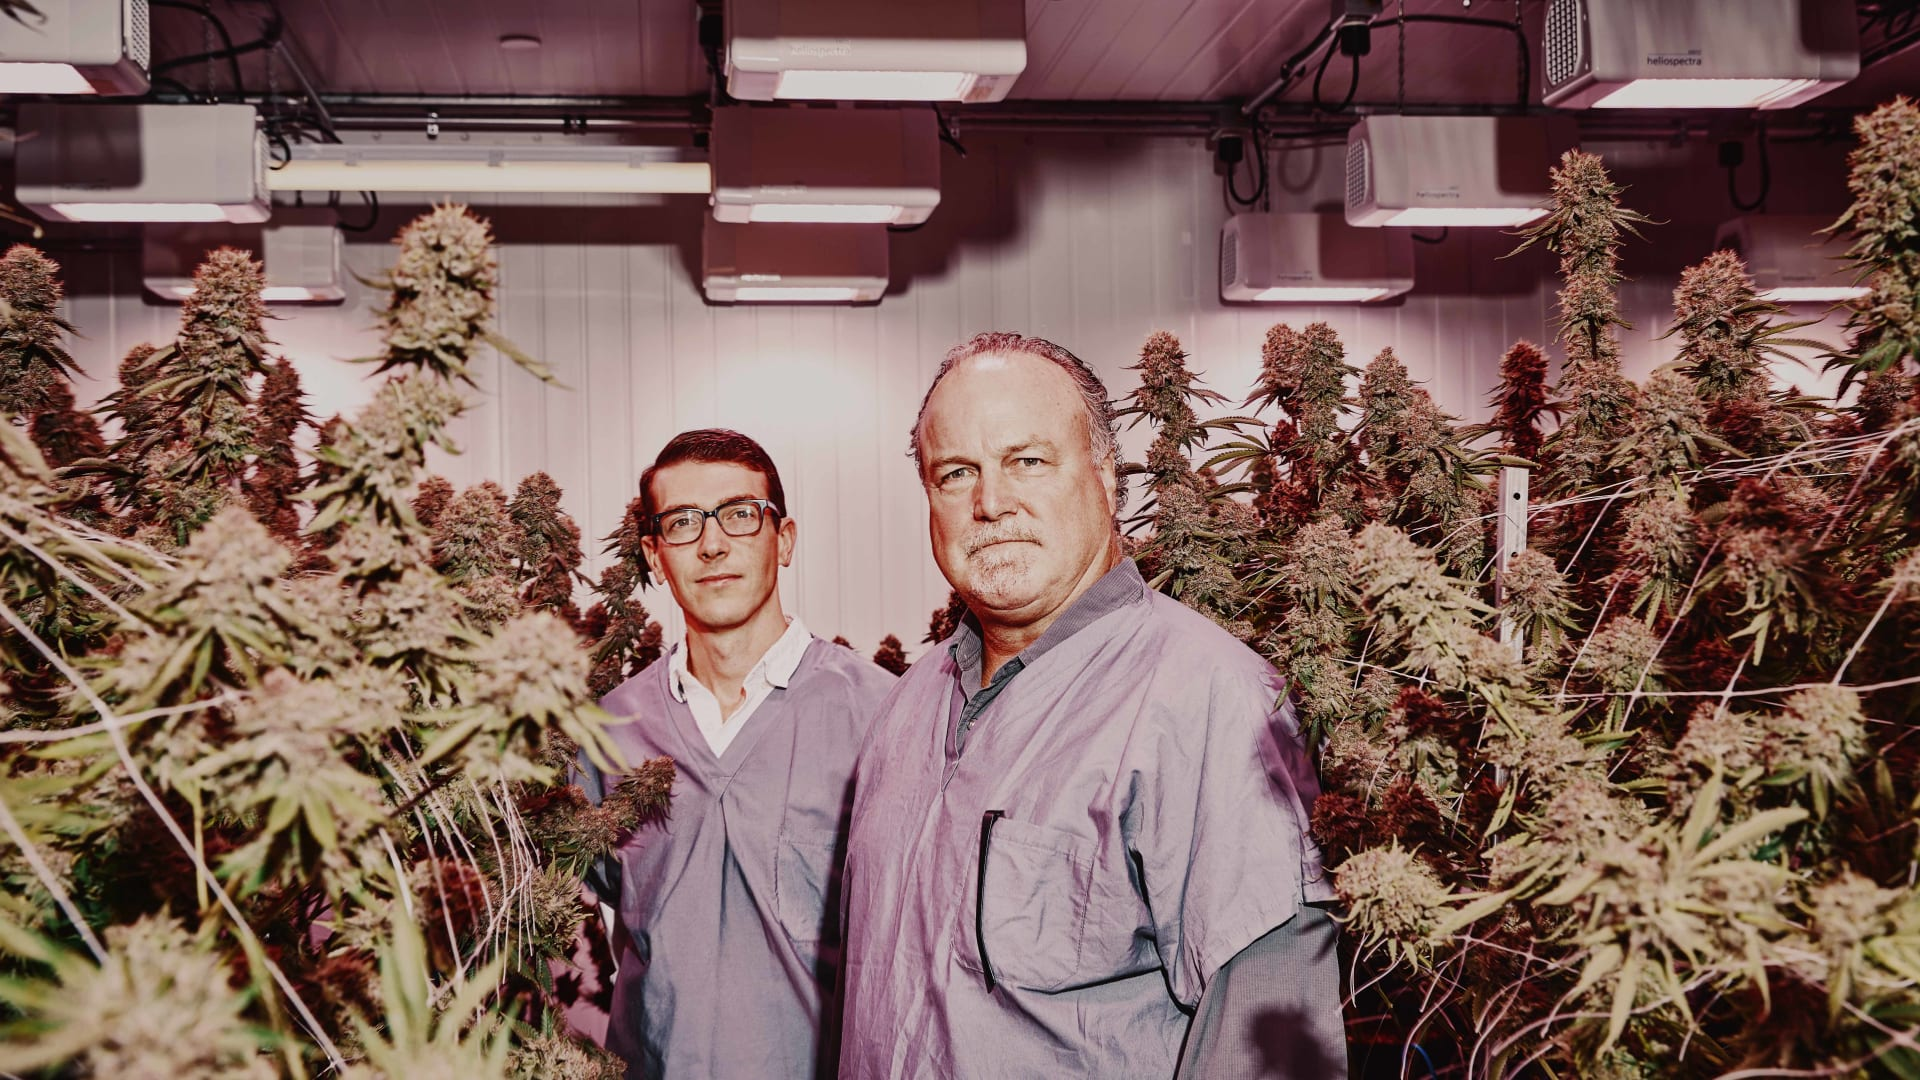 Ryan Ansin, co-founder (left), and Keith Cooper, CEO (right), at Revolutionary Farms.